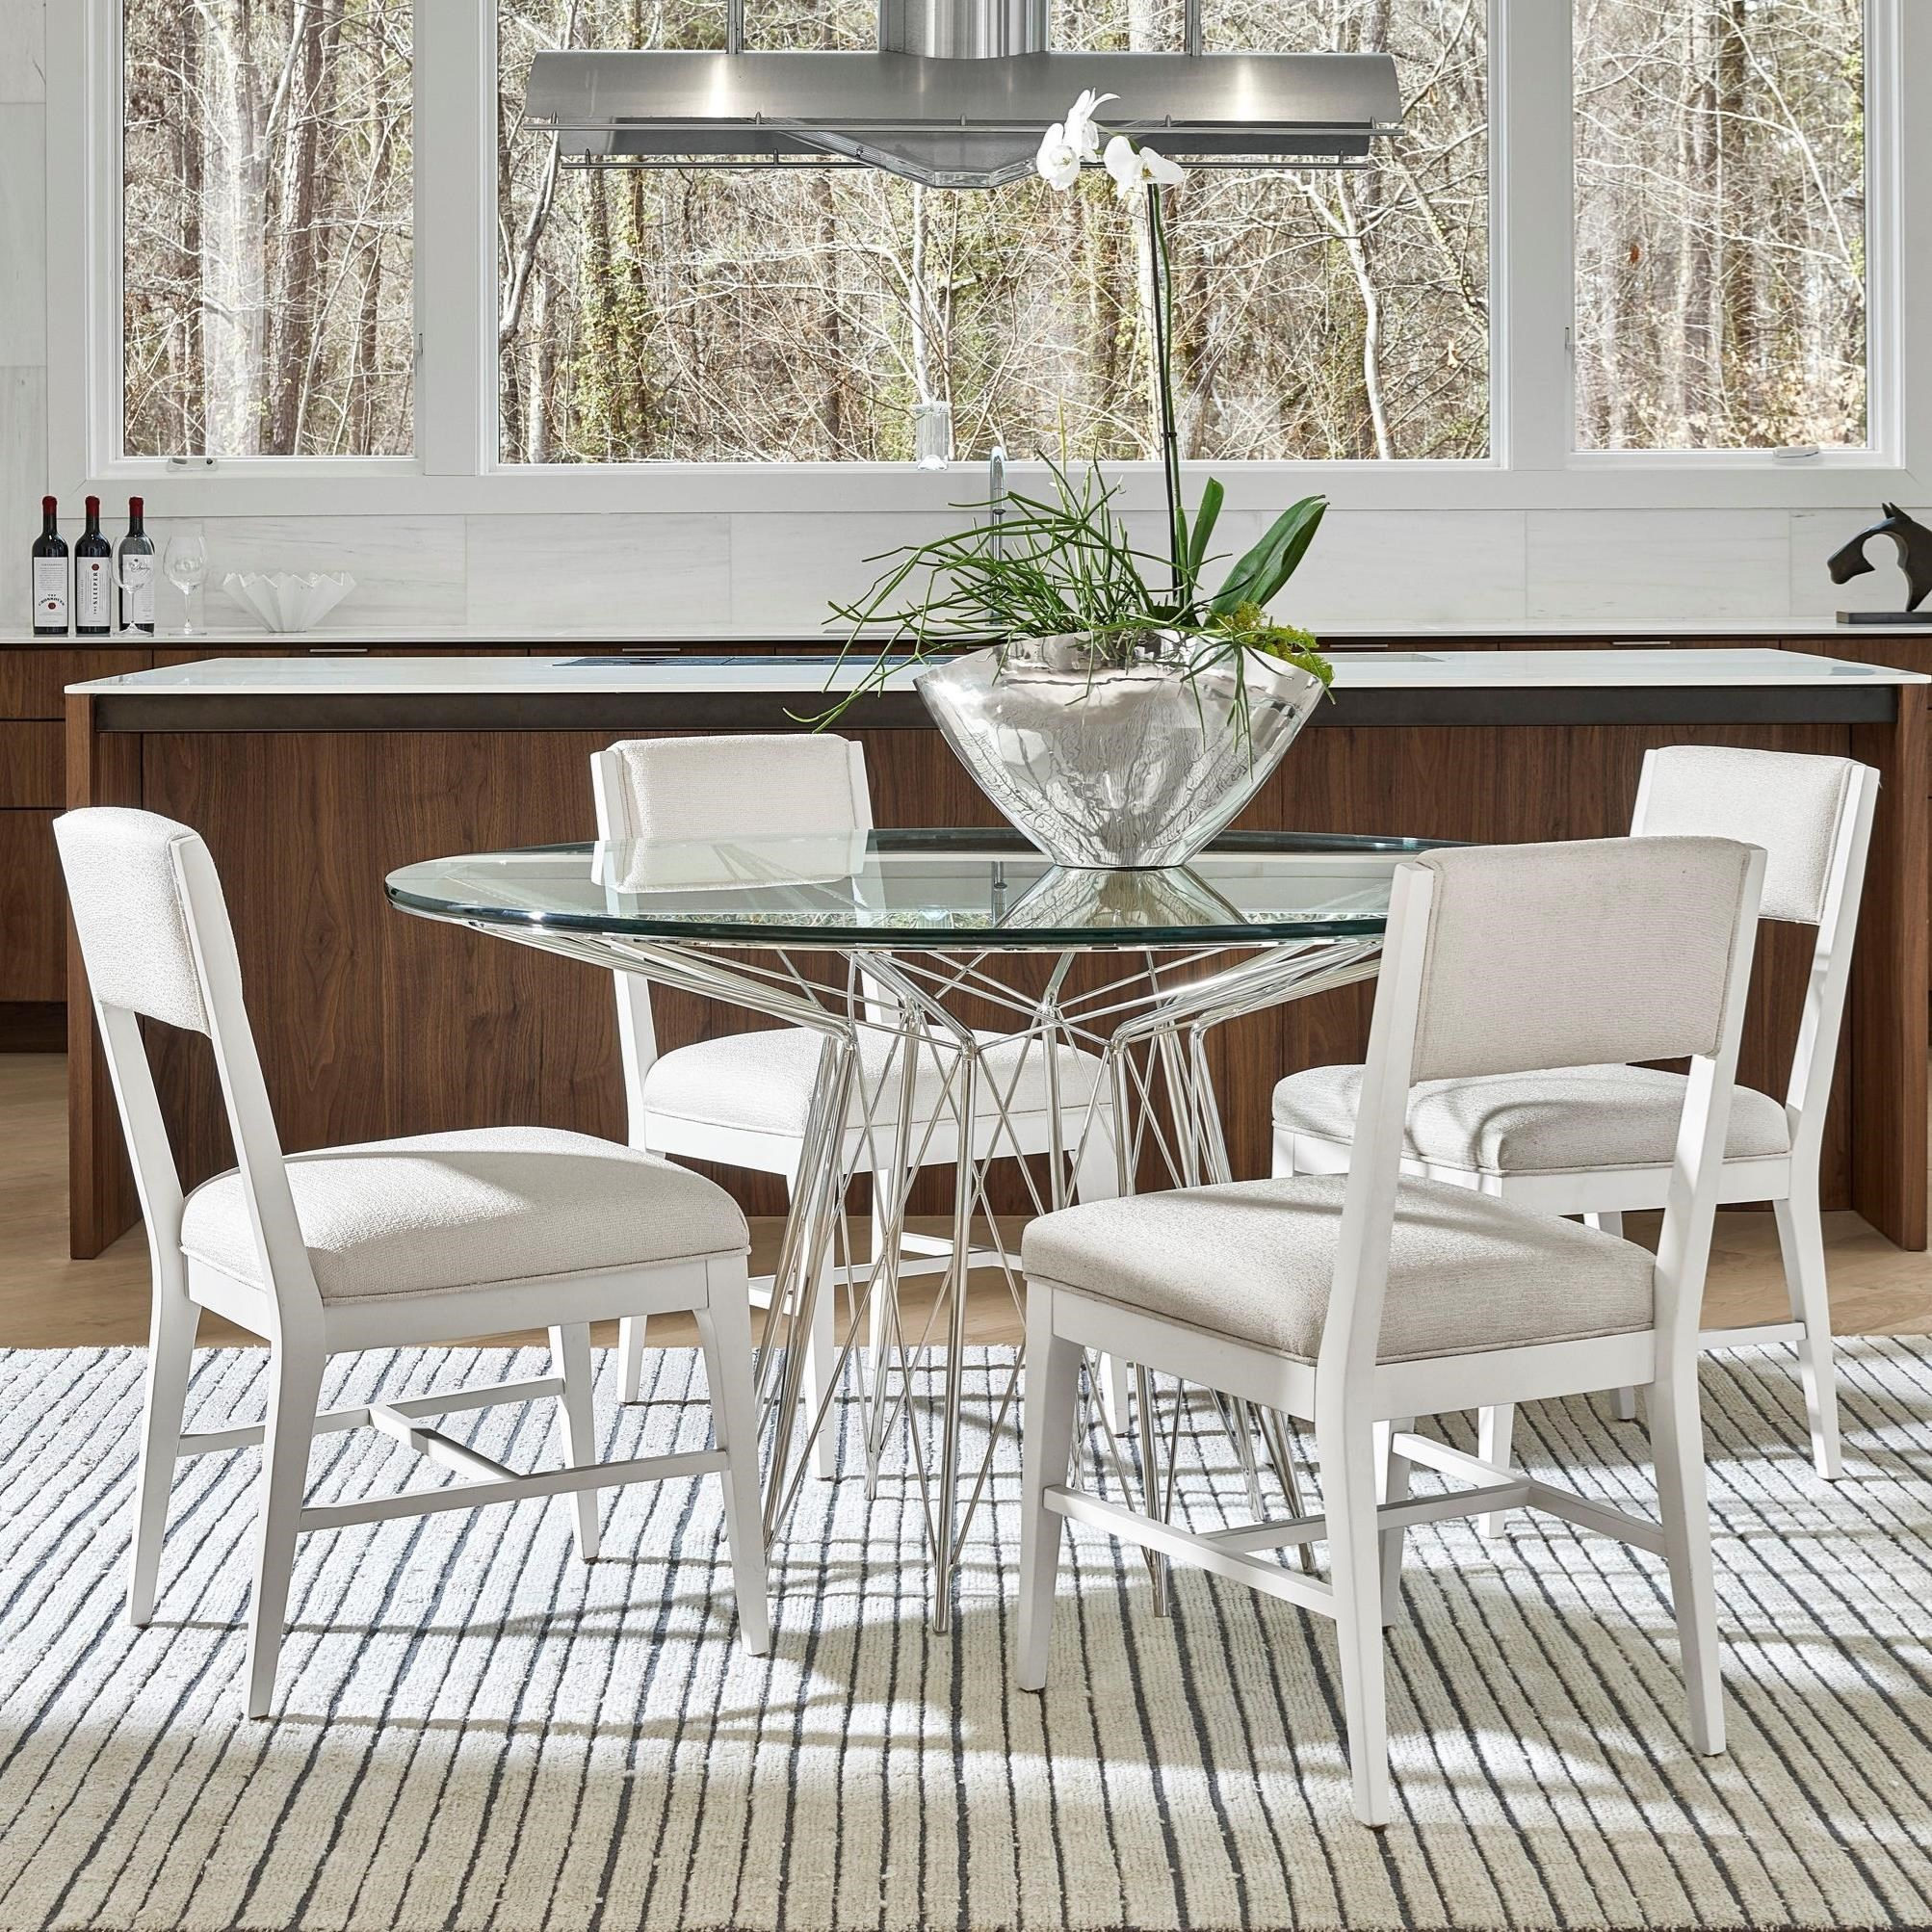 Modern 5-Piece Axel Dining Table Set by Universal at Baer's Furniture